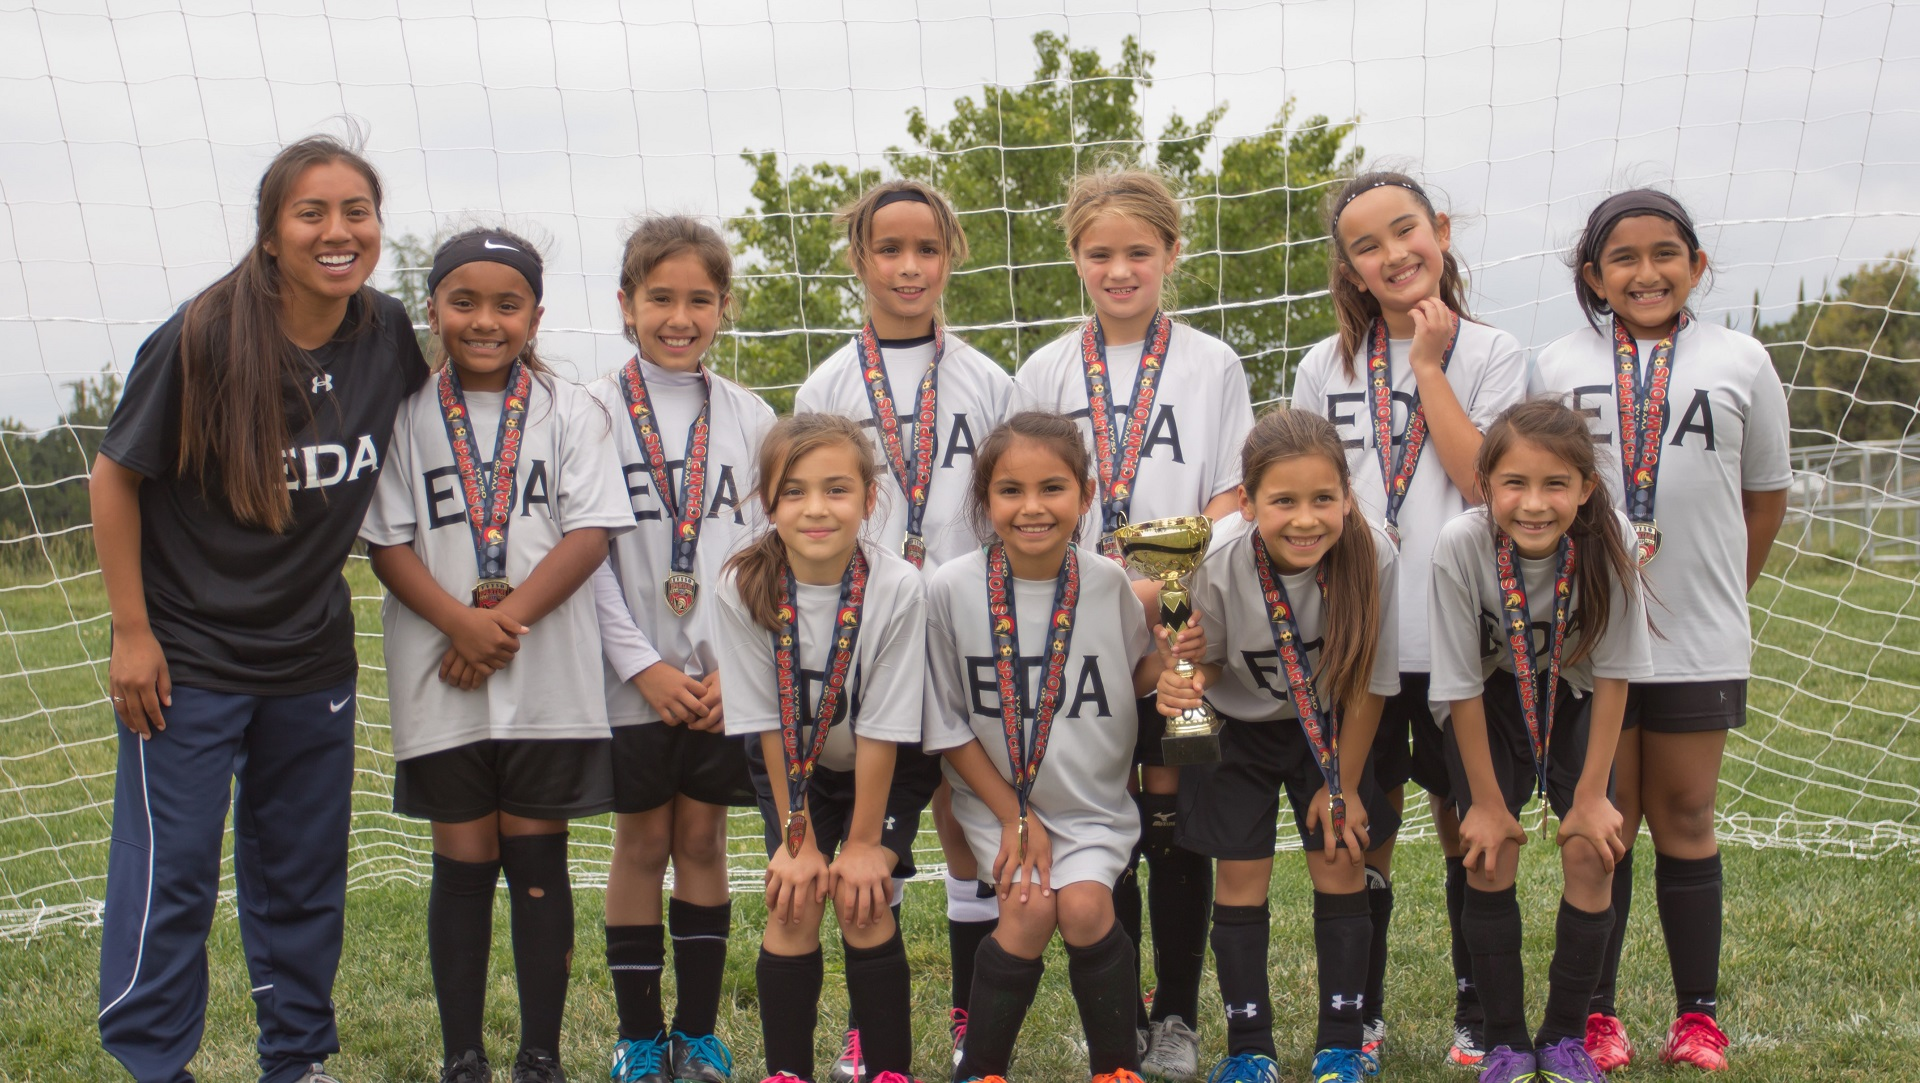 eda g08 2016 spartans cup champs